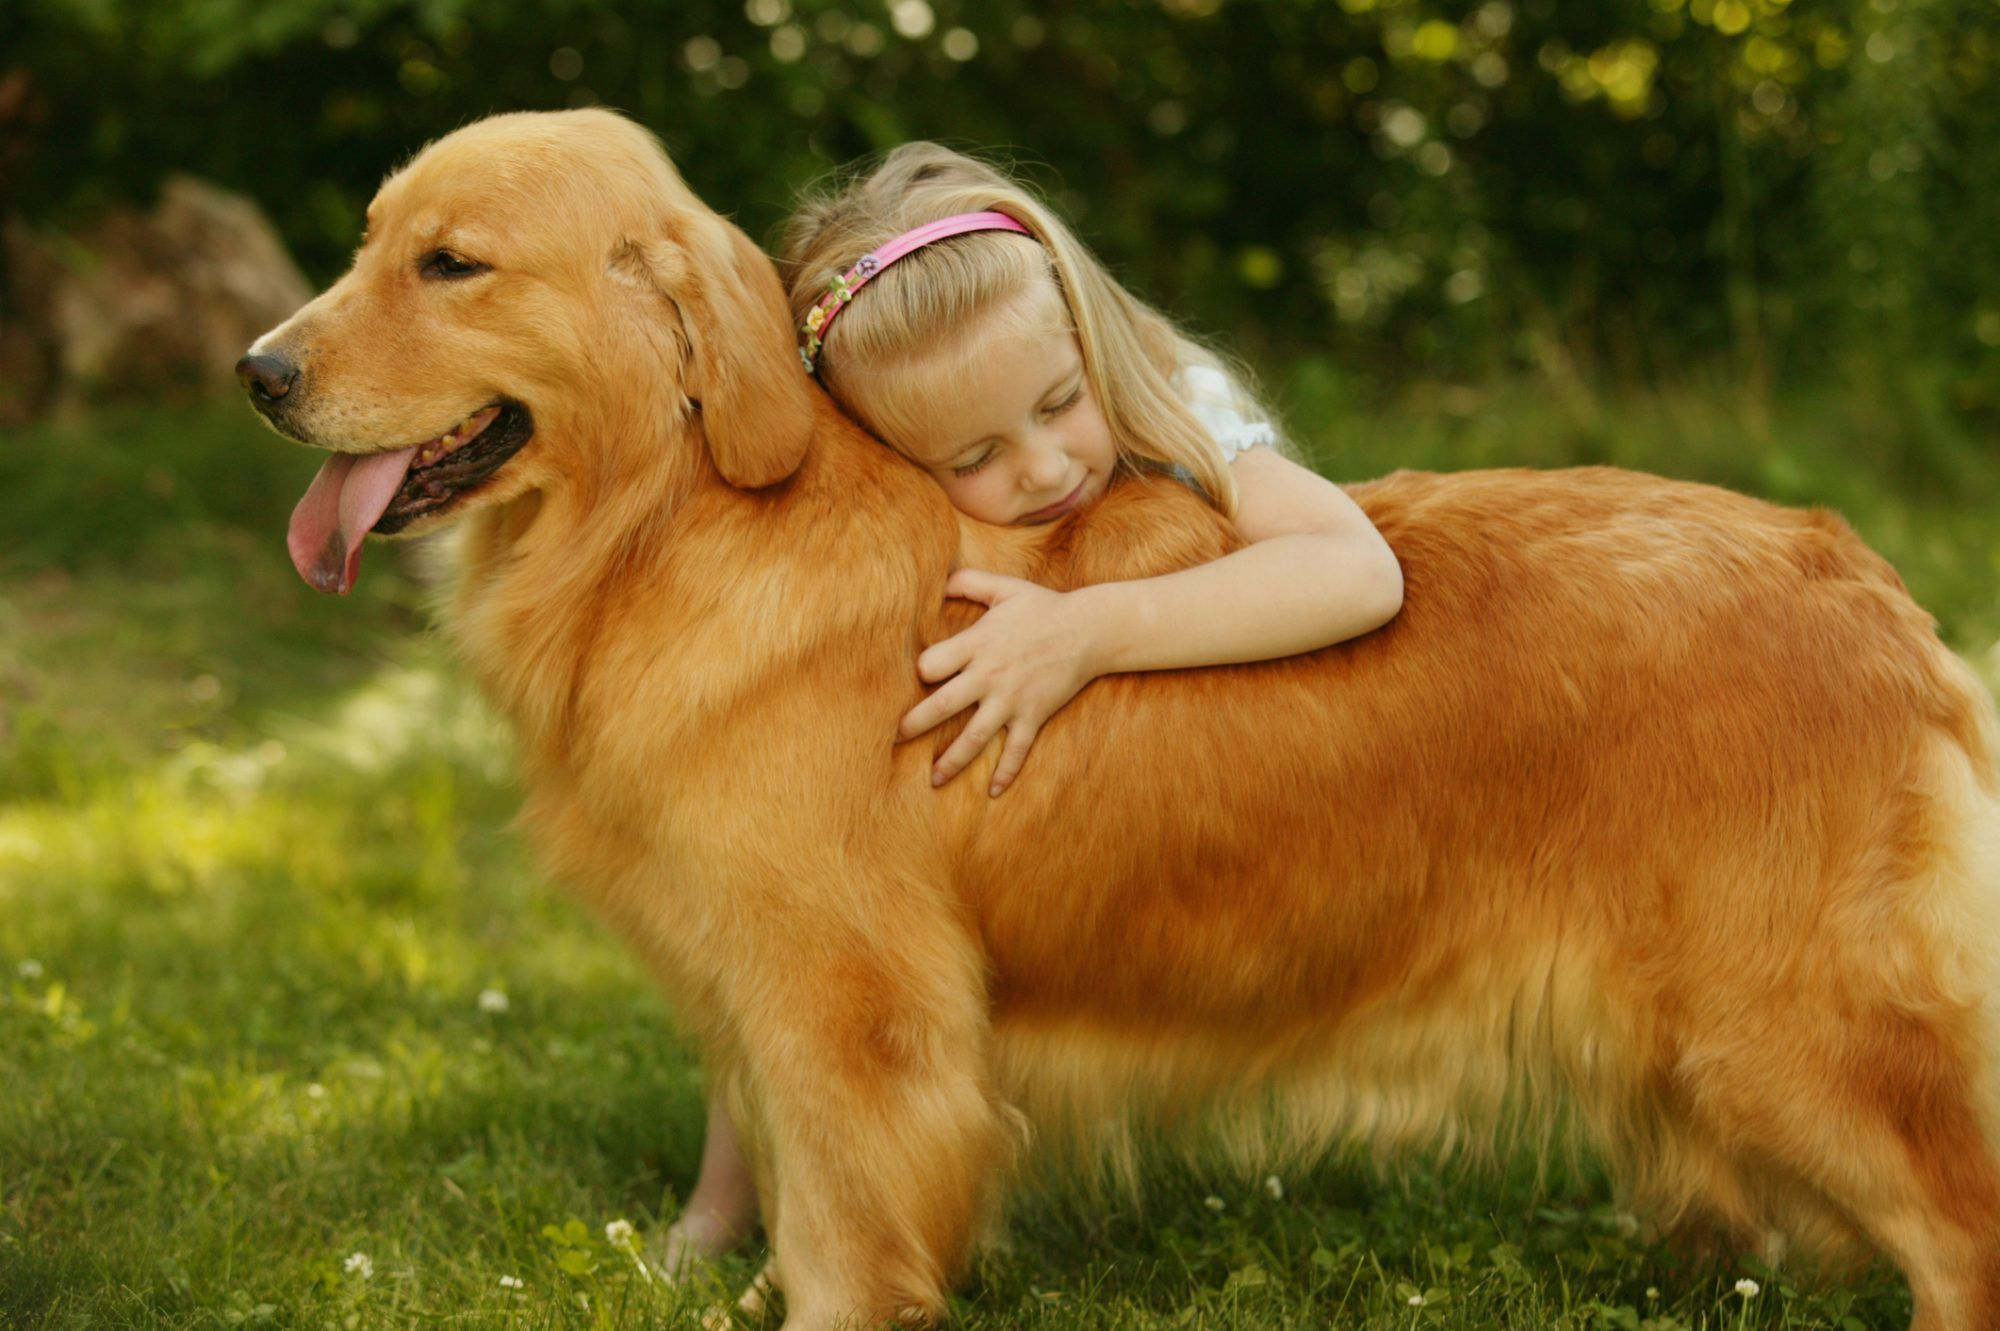 The Best Dog Breeds For Families With Kids In 2020 Dogs Golden Retriever Golden Retriever Puppies